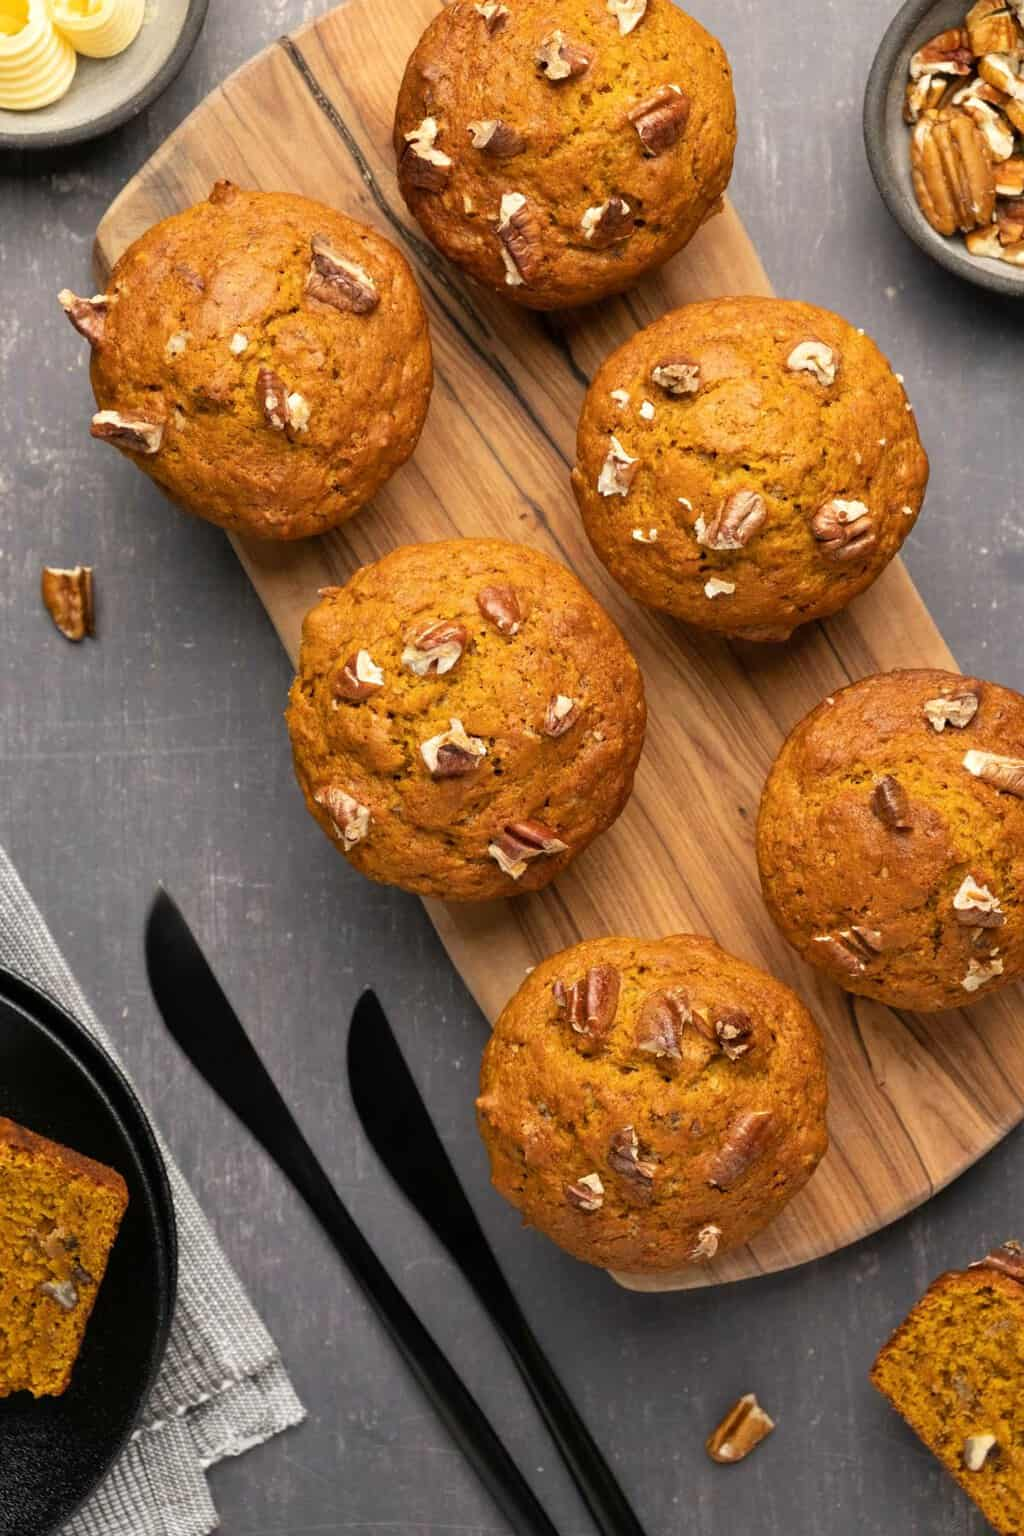 Vegan pumpkin muffins topped with chopped pecans on a wooden board.